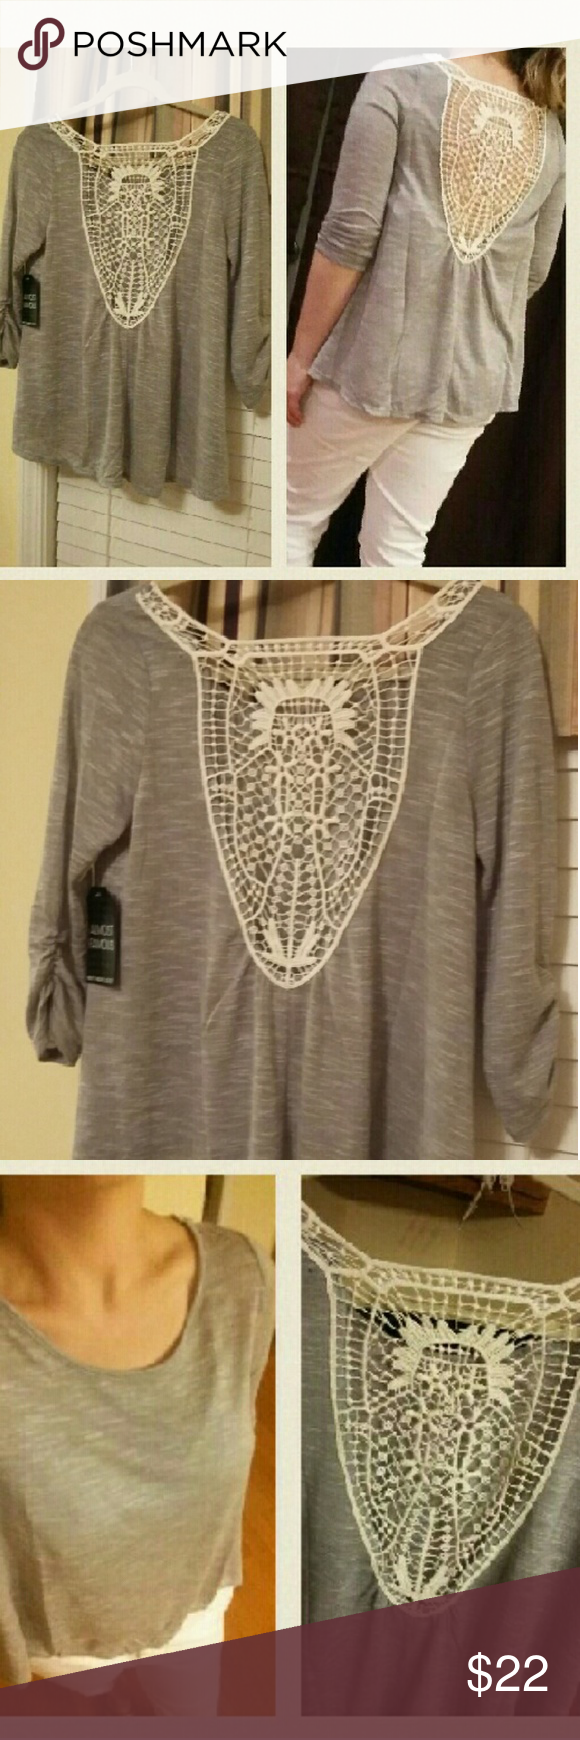 ba809ece4d5 Crochet back short. Has 3 4 length sleeves gathered on one side. Gray with cream  crochet back. Can see through short slightly. It is a thin shirt. Tops